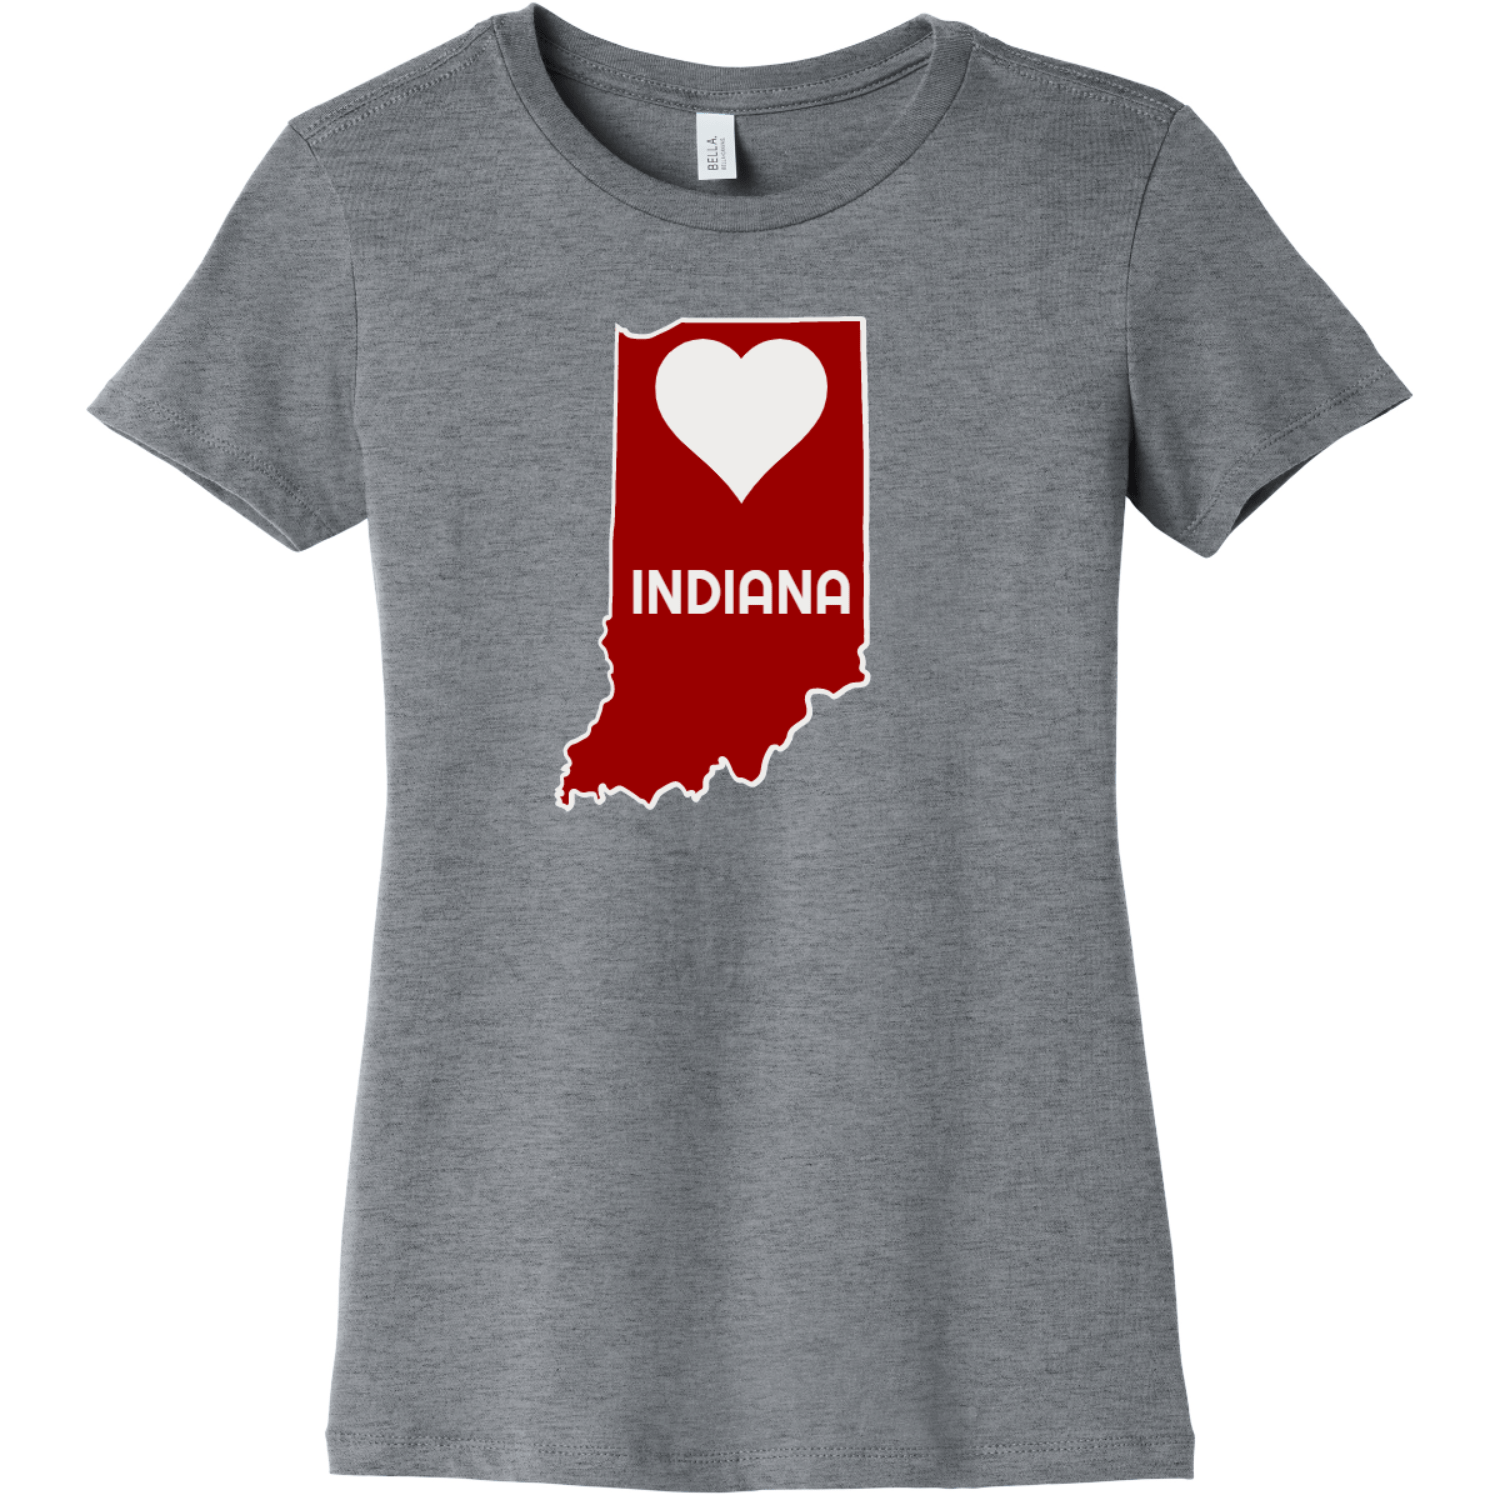 Indiana Heart State T Shirt For Women Athletic Heather Bella Canvas 6004 Ladies The Favorite Tee